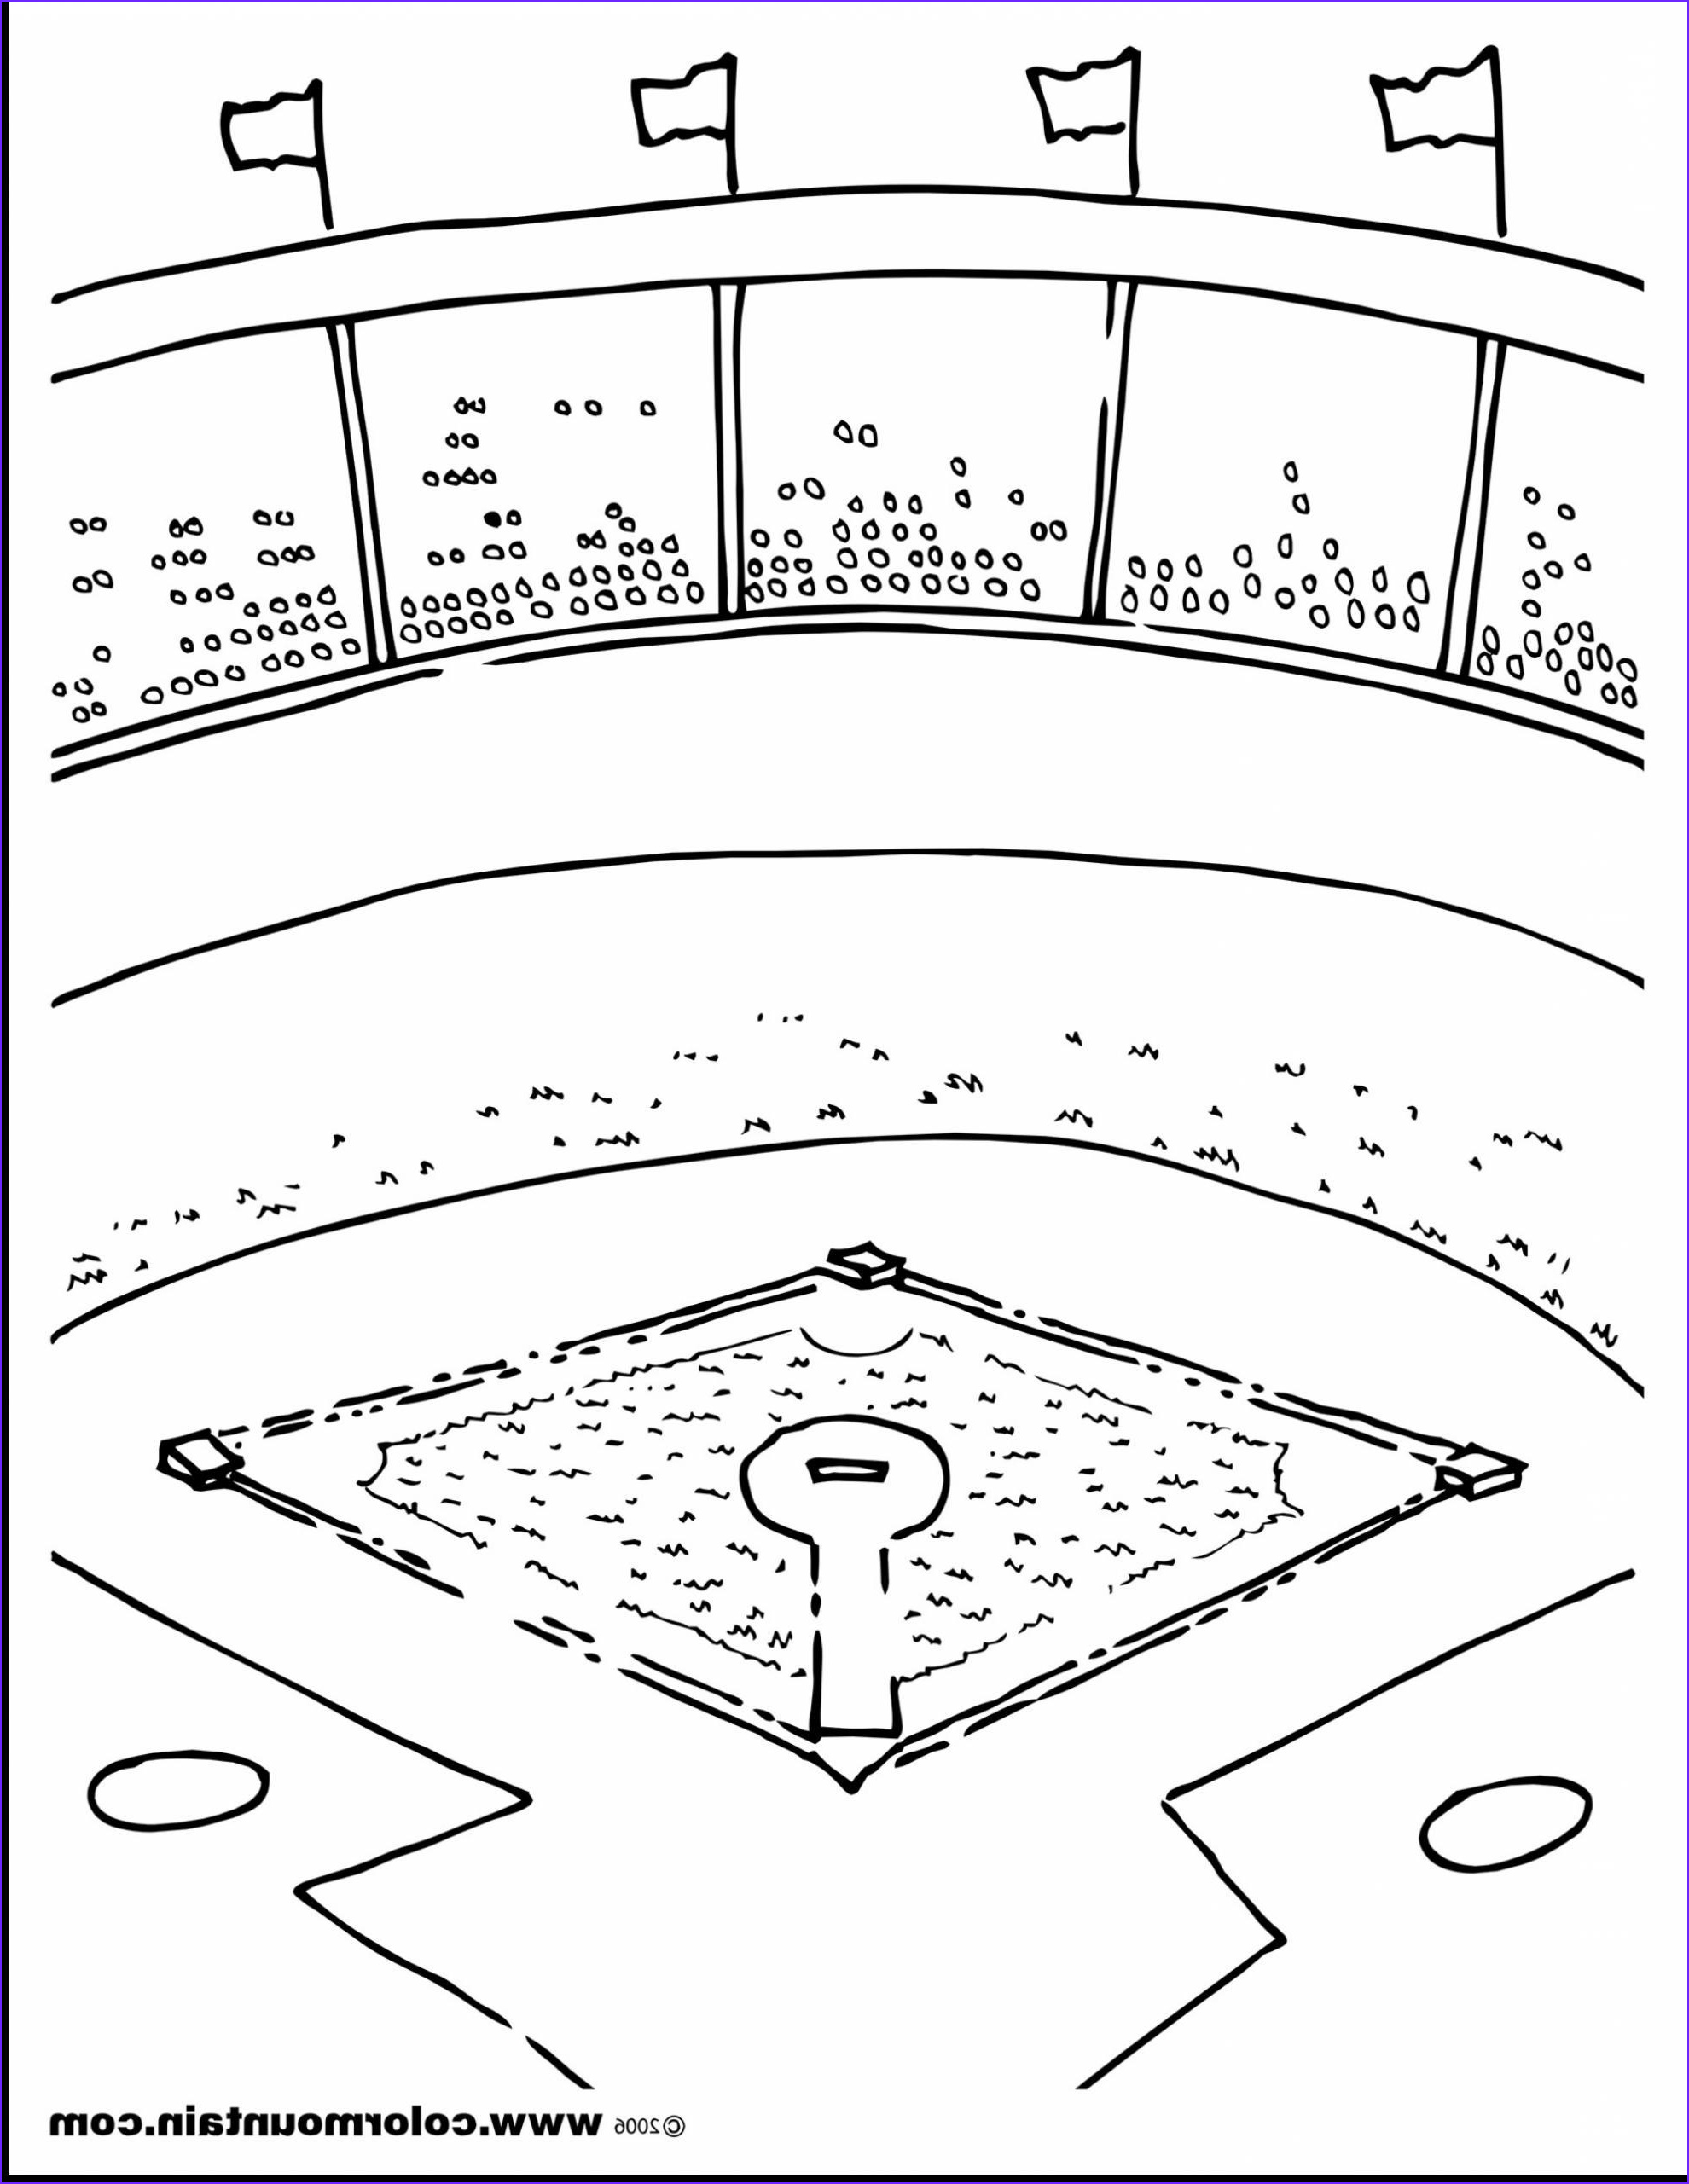 Baseball Field Coloring Page New Collection Baseball Diamond Drawing at Getdrawings